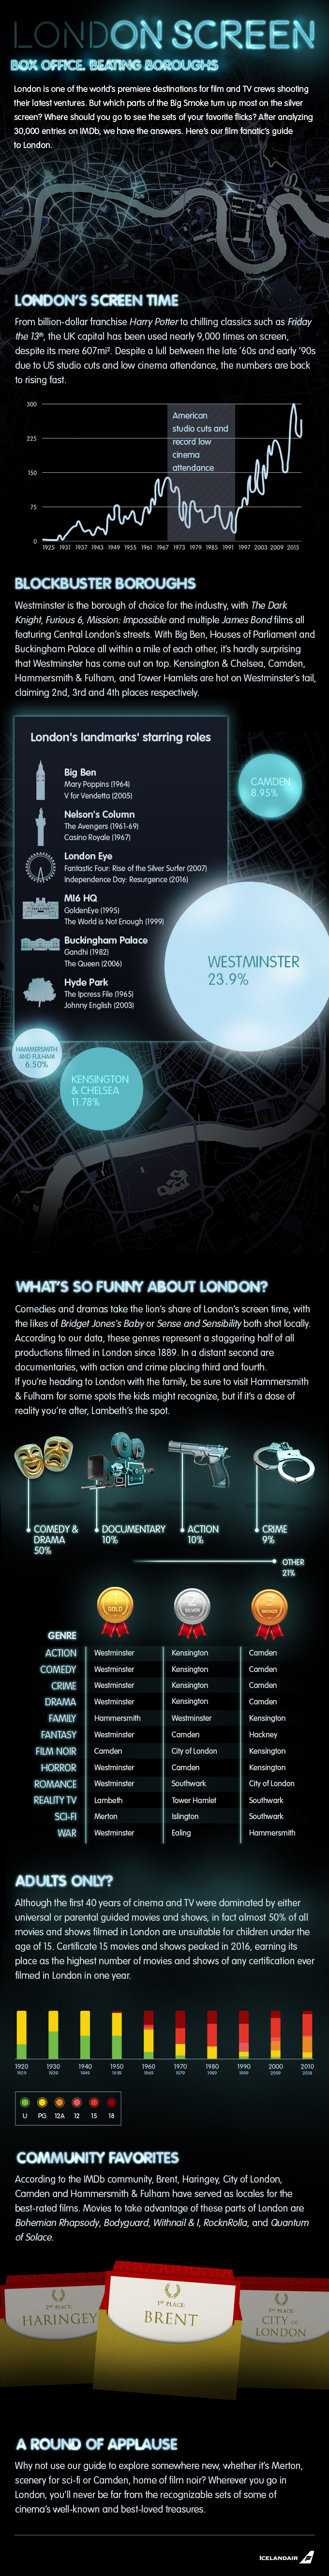 an infographic of London On Screen Box Office information showing the most shown genres, landmarks, and screen time